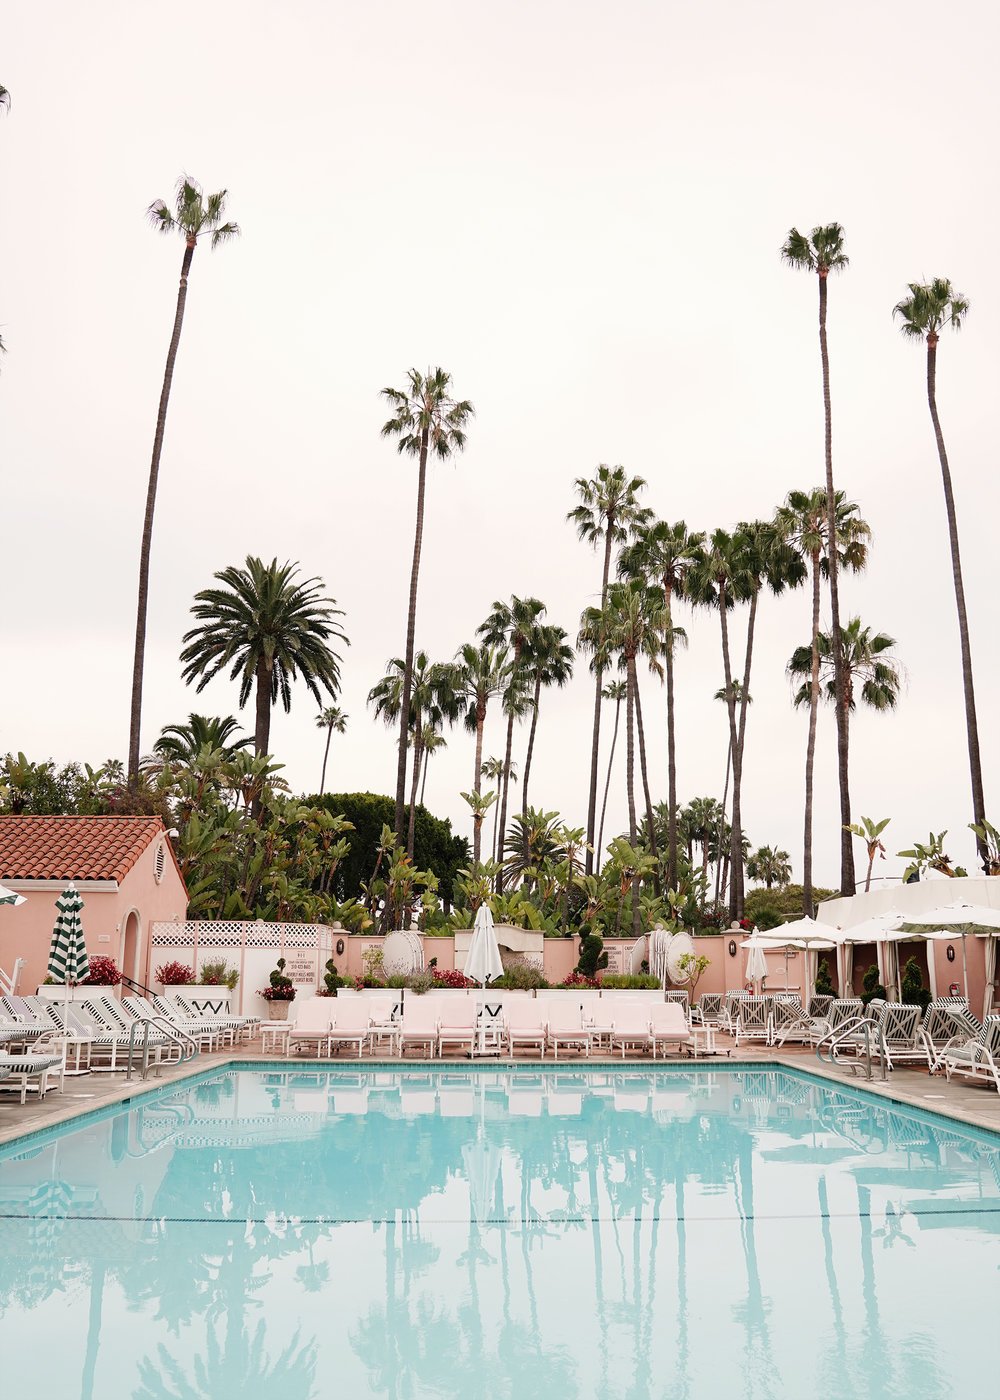 Pathport x Dorchester Collection - An exclusive collection of five guides showcasing some of the most Instagrammable spots in L.A, Rome, Milan, London and Paris.